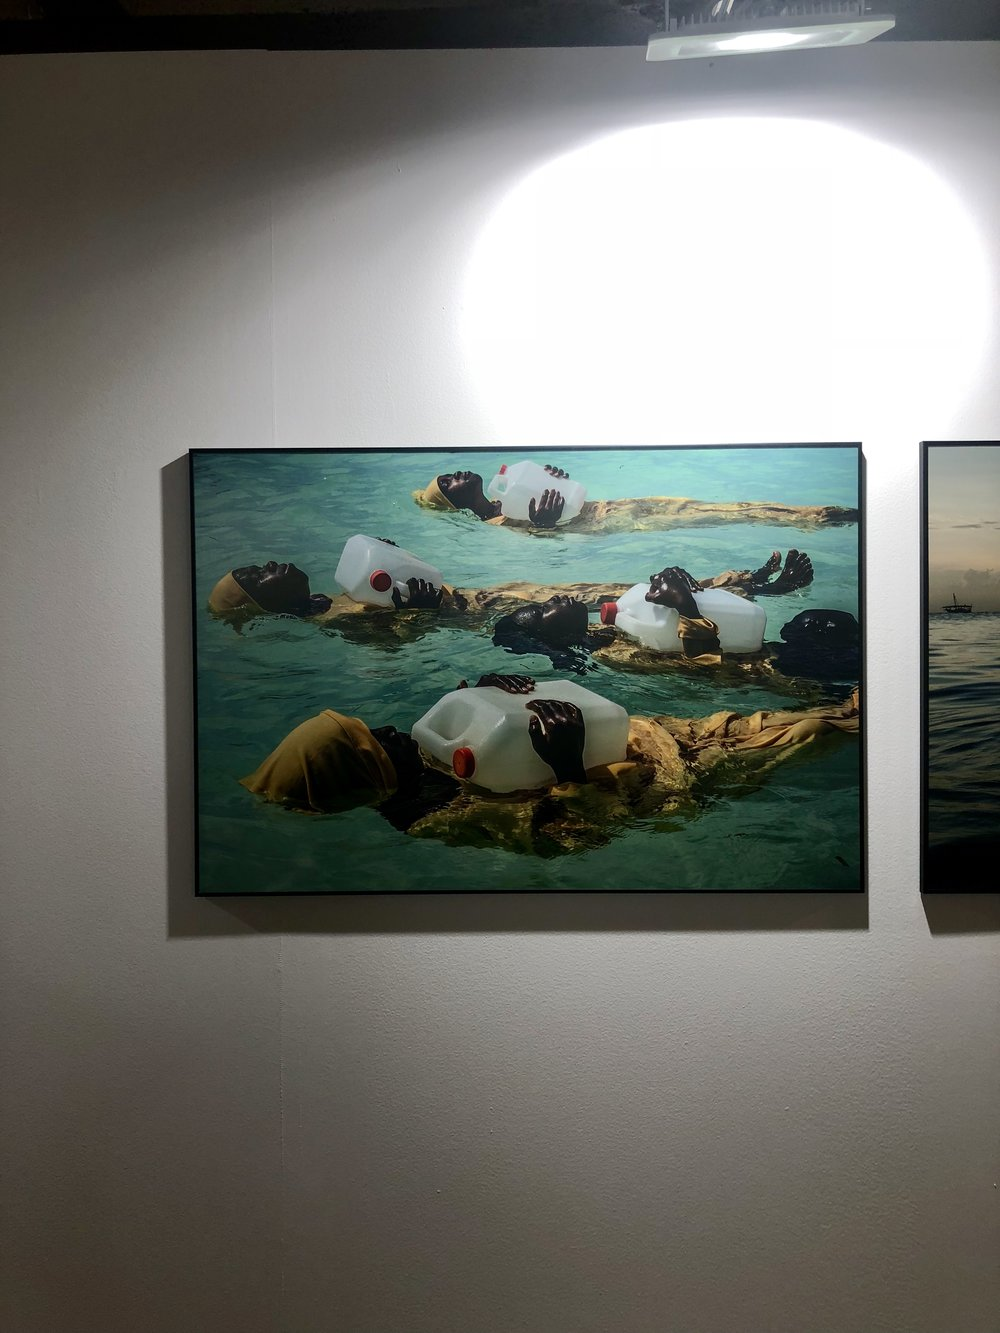 One of the more uplifting photos from the exhibition, about girls in Africa learning to swim.